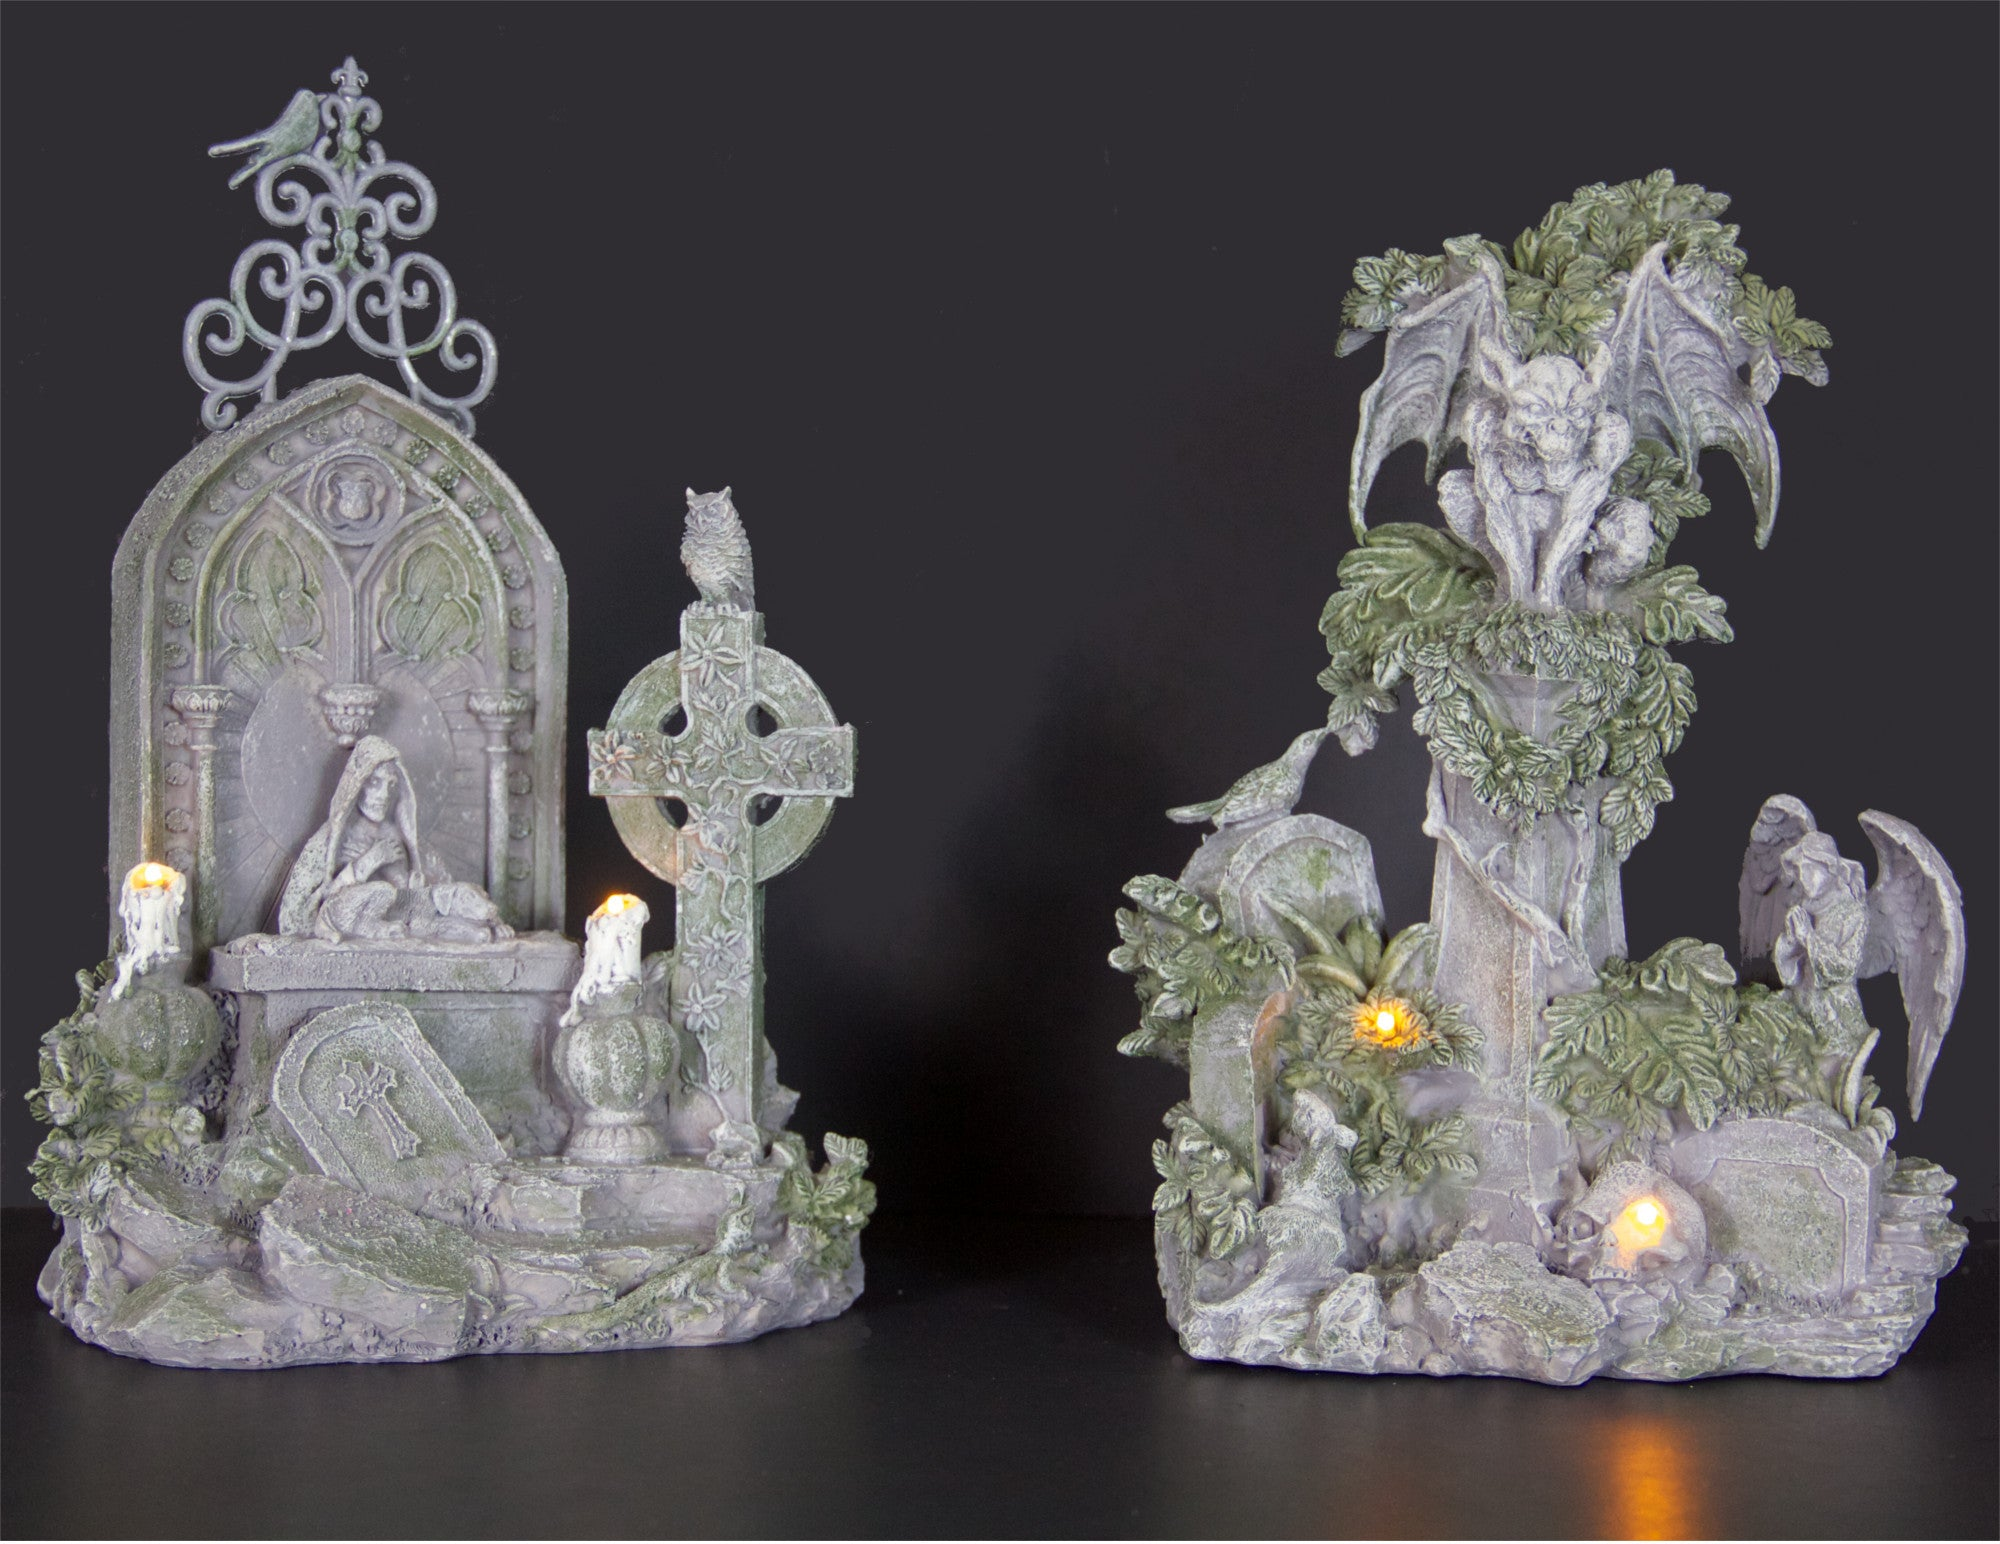 Haunted Cemetery Figurines with Gargoyle Figurines - Graveyard